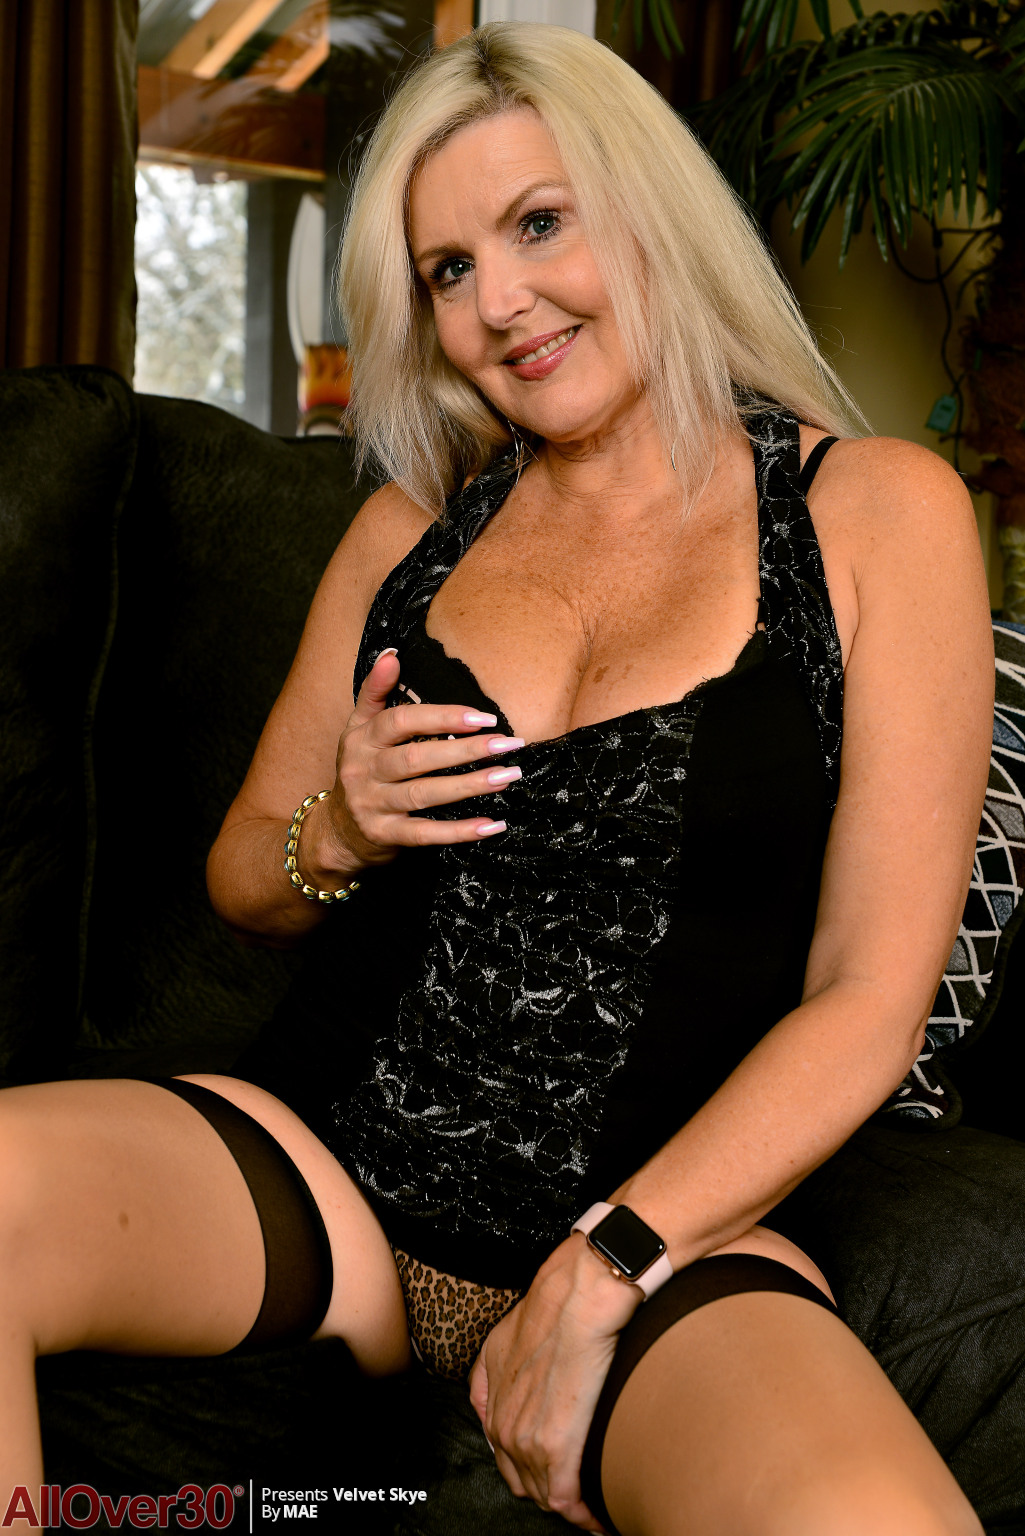 velvet-skye-angelic-mature-beauty-04